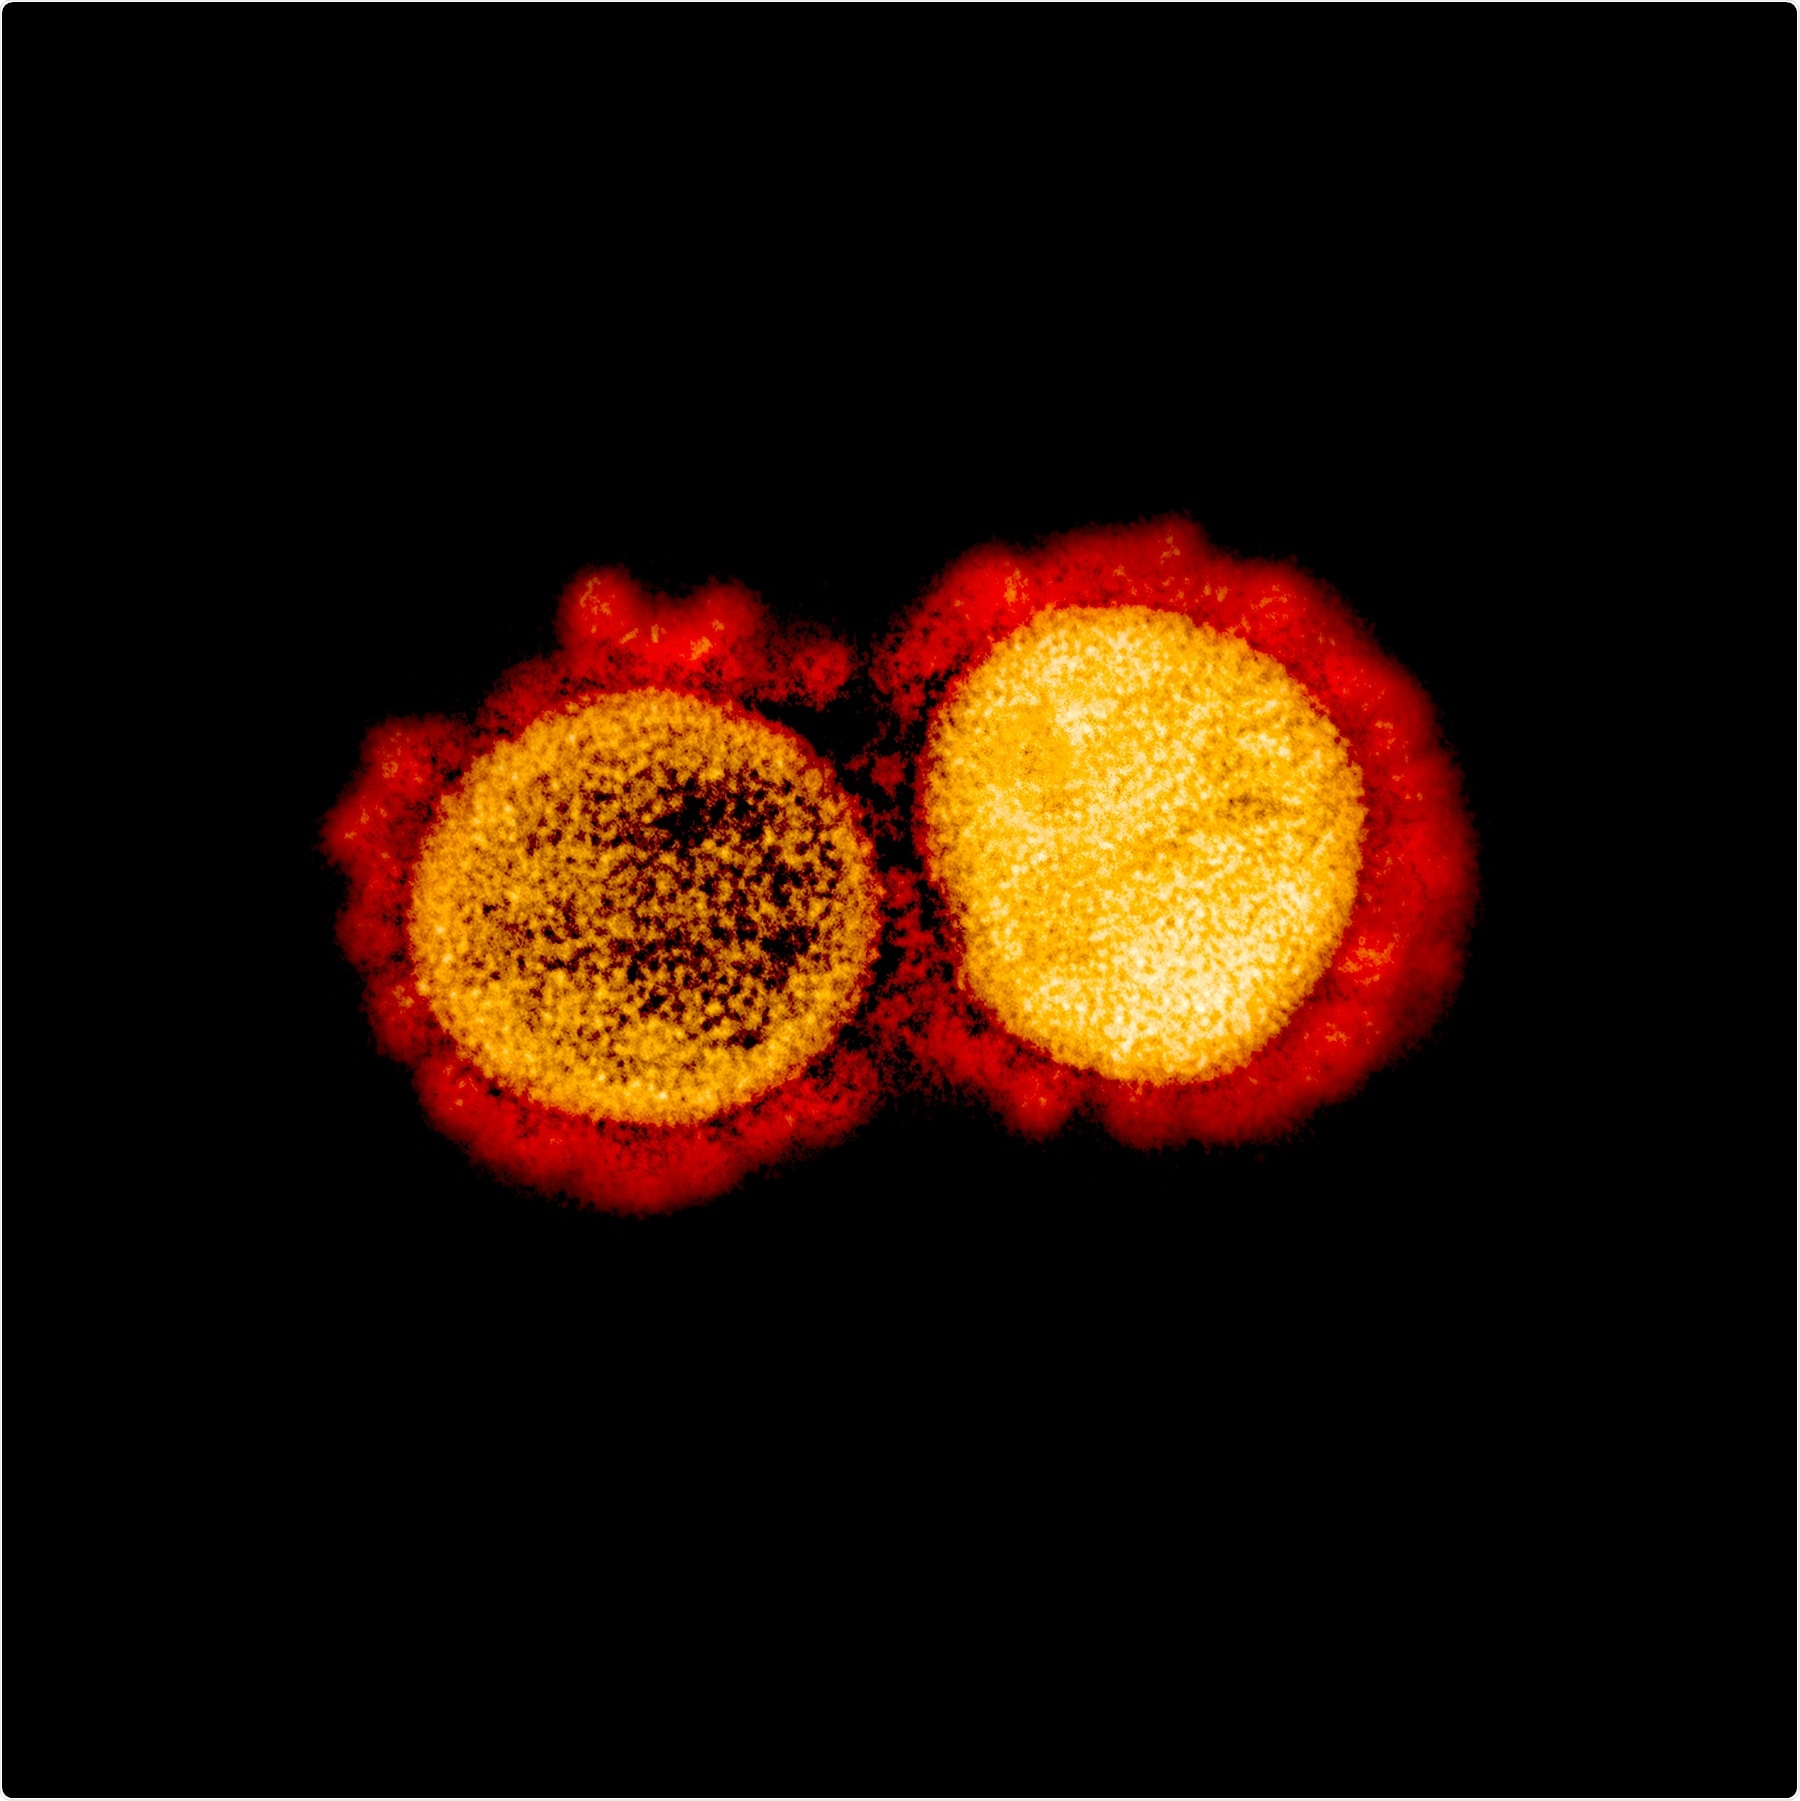 Transmission electron micrograph of SARS-CoV-2 virus particles, isolated from a patient. Image captured and color-enhanced at the NIAID Integrated Research Facility (IRF) in Fort Detrick, Maryland. Credit: NIAID